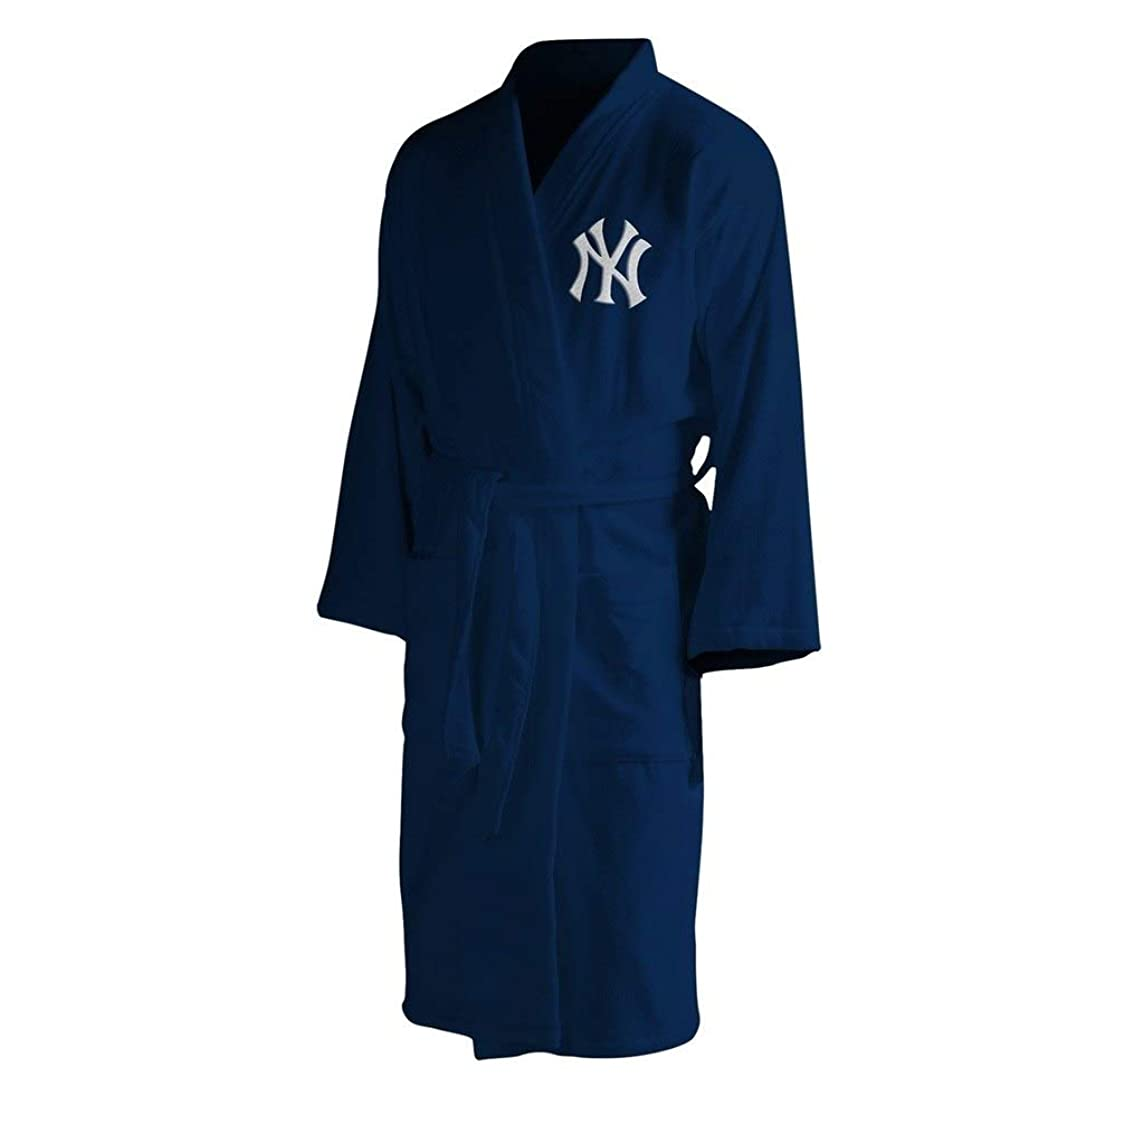 The Northwest Company MLB New York Yankees Men's Bathrobe, One Size, Multicolor